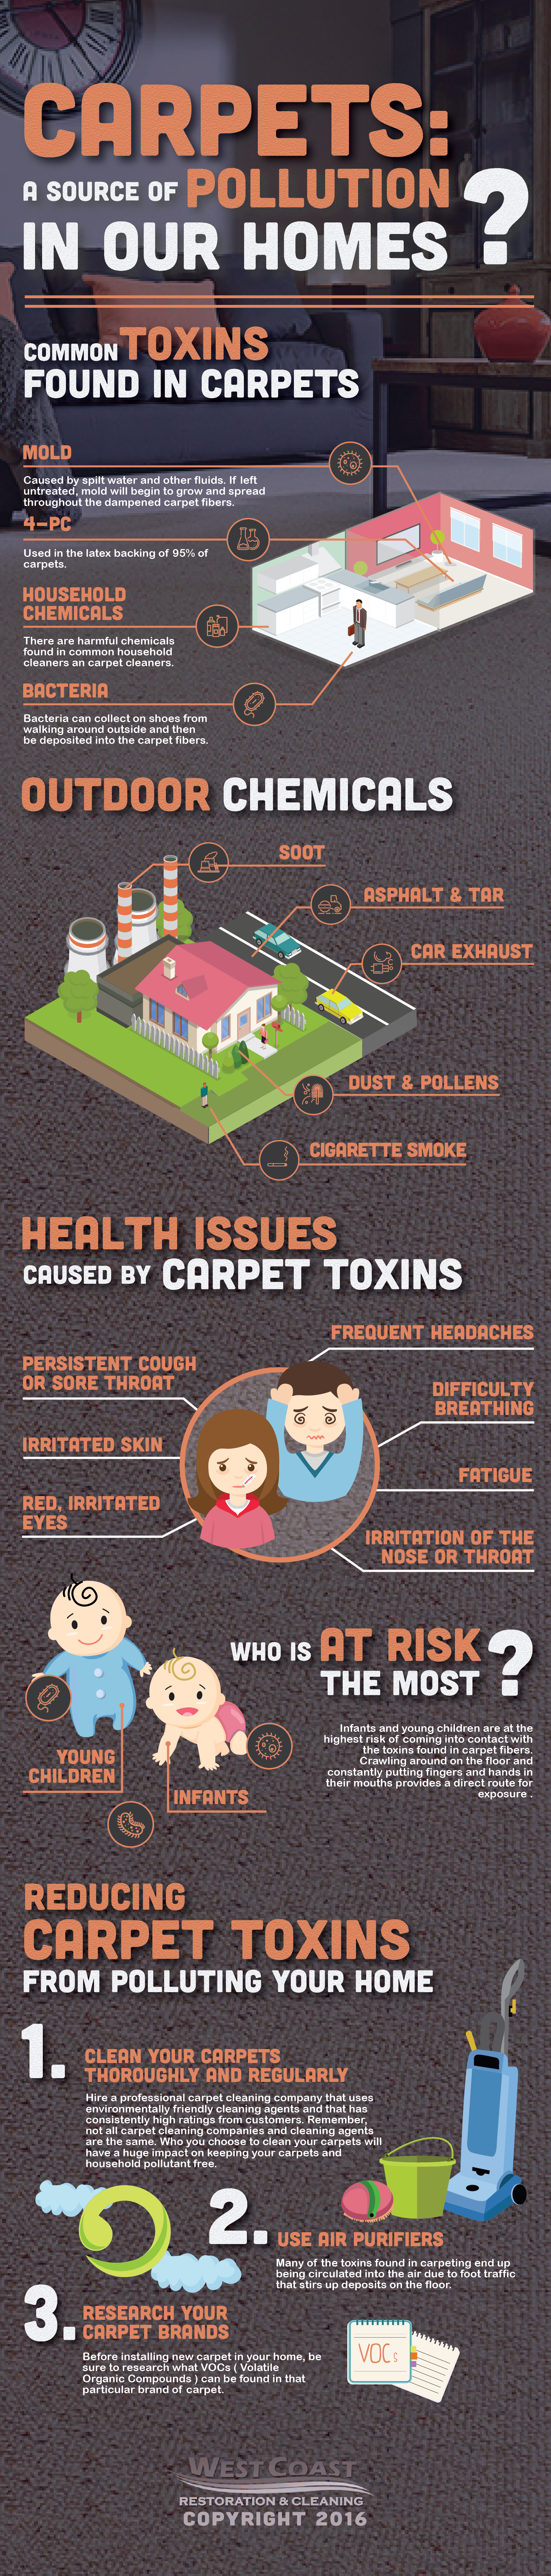 Carpets: A Source of Pollution in Our Homes?